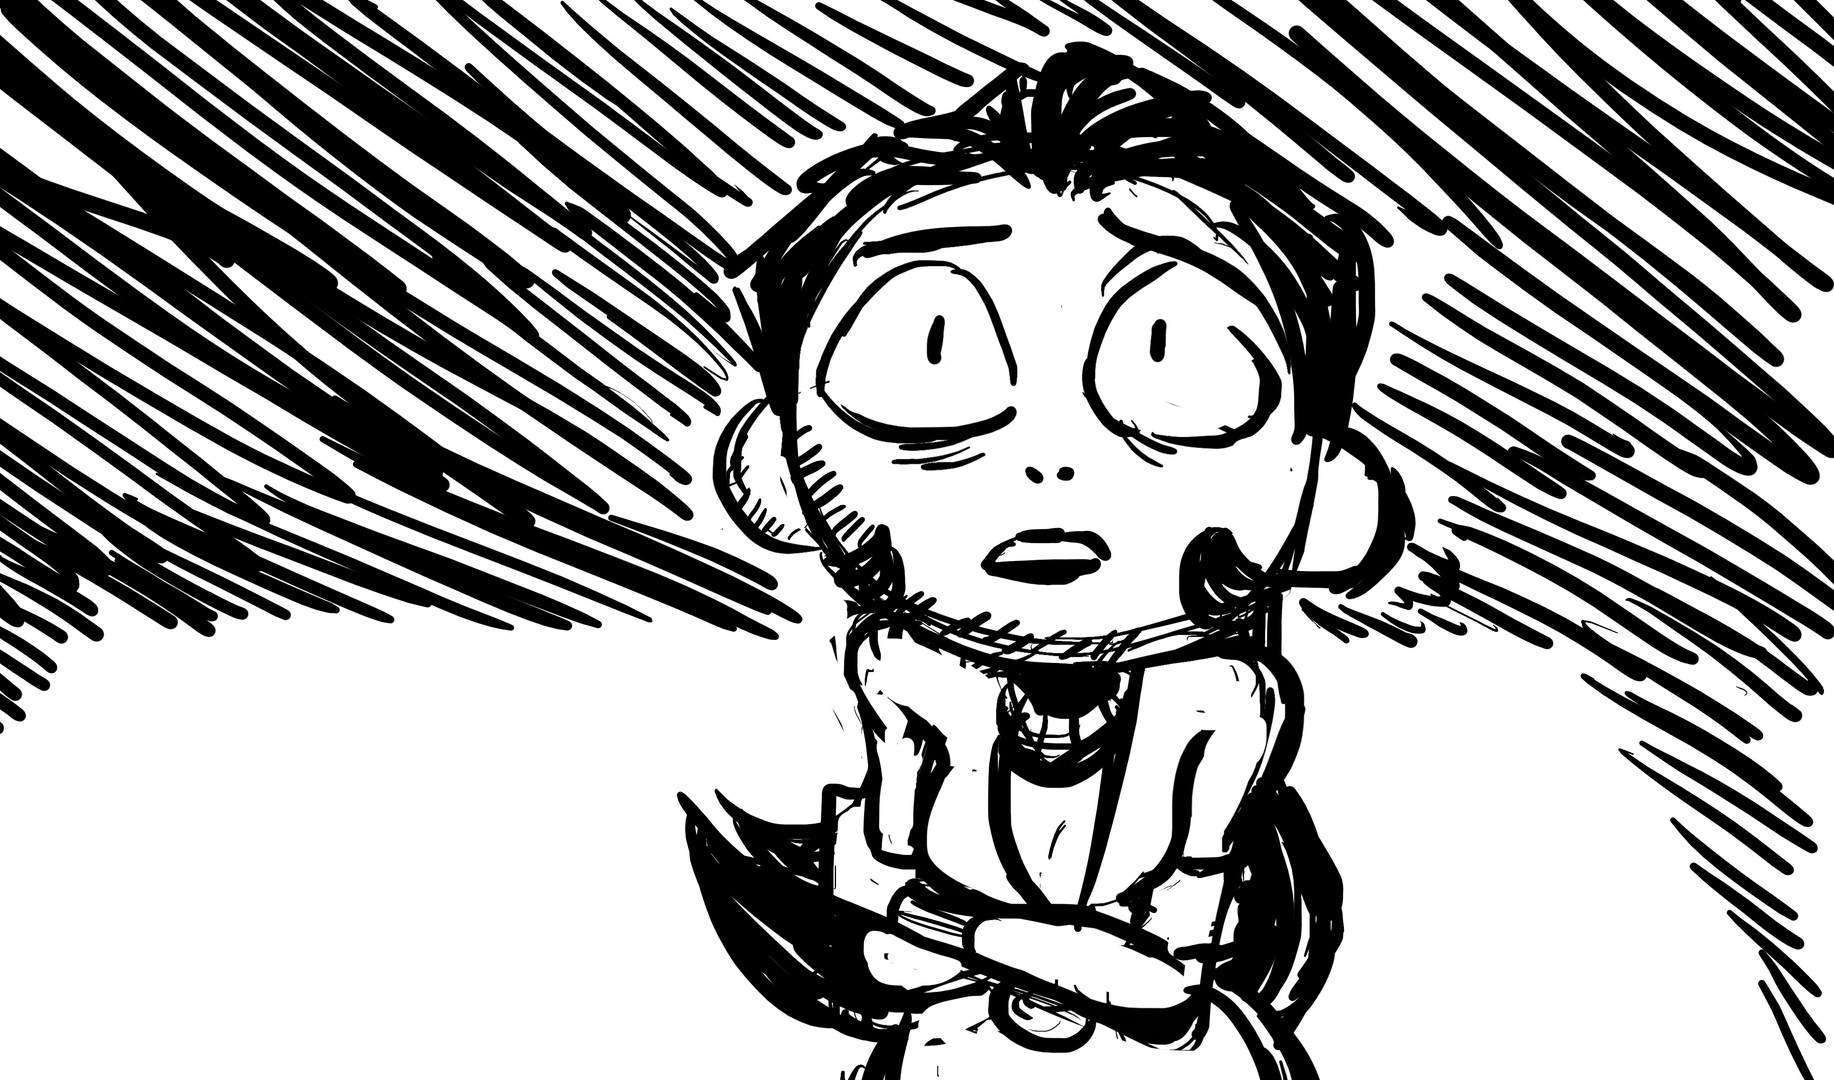 STORYBOARD - E - _0019_Layer Comp 20.jpg